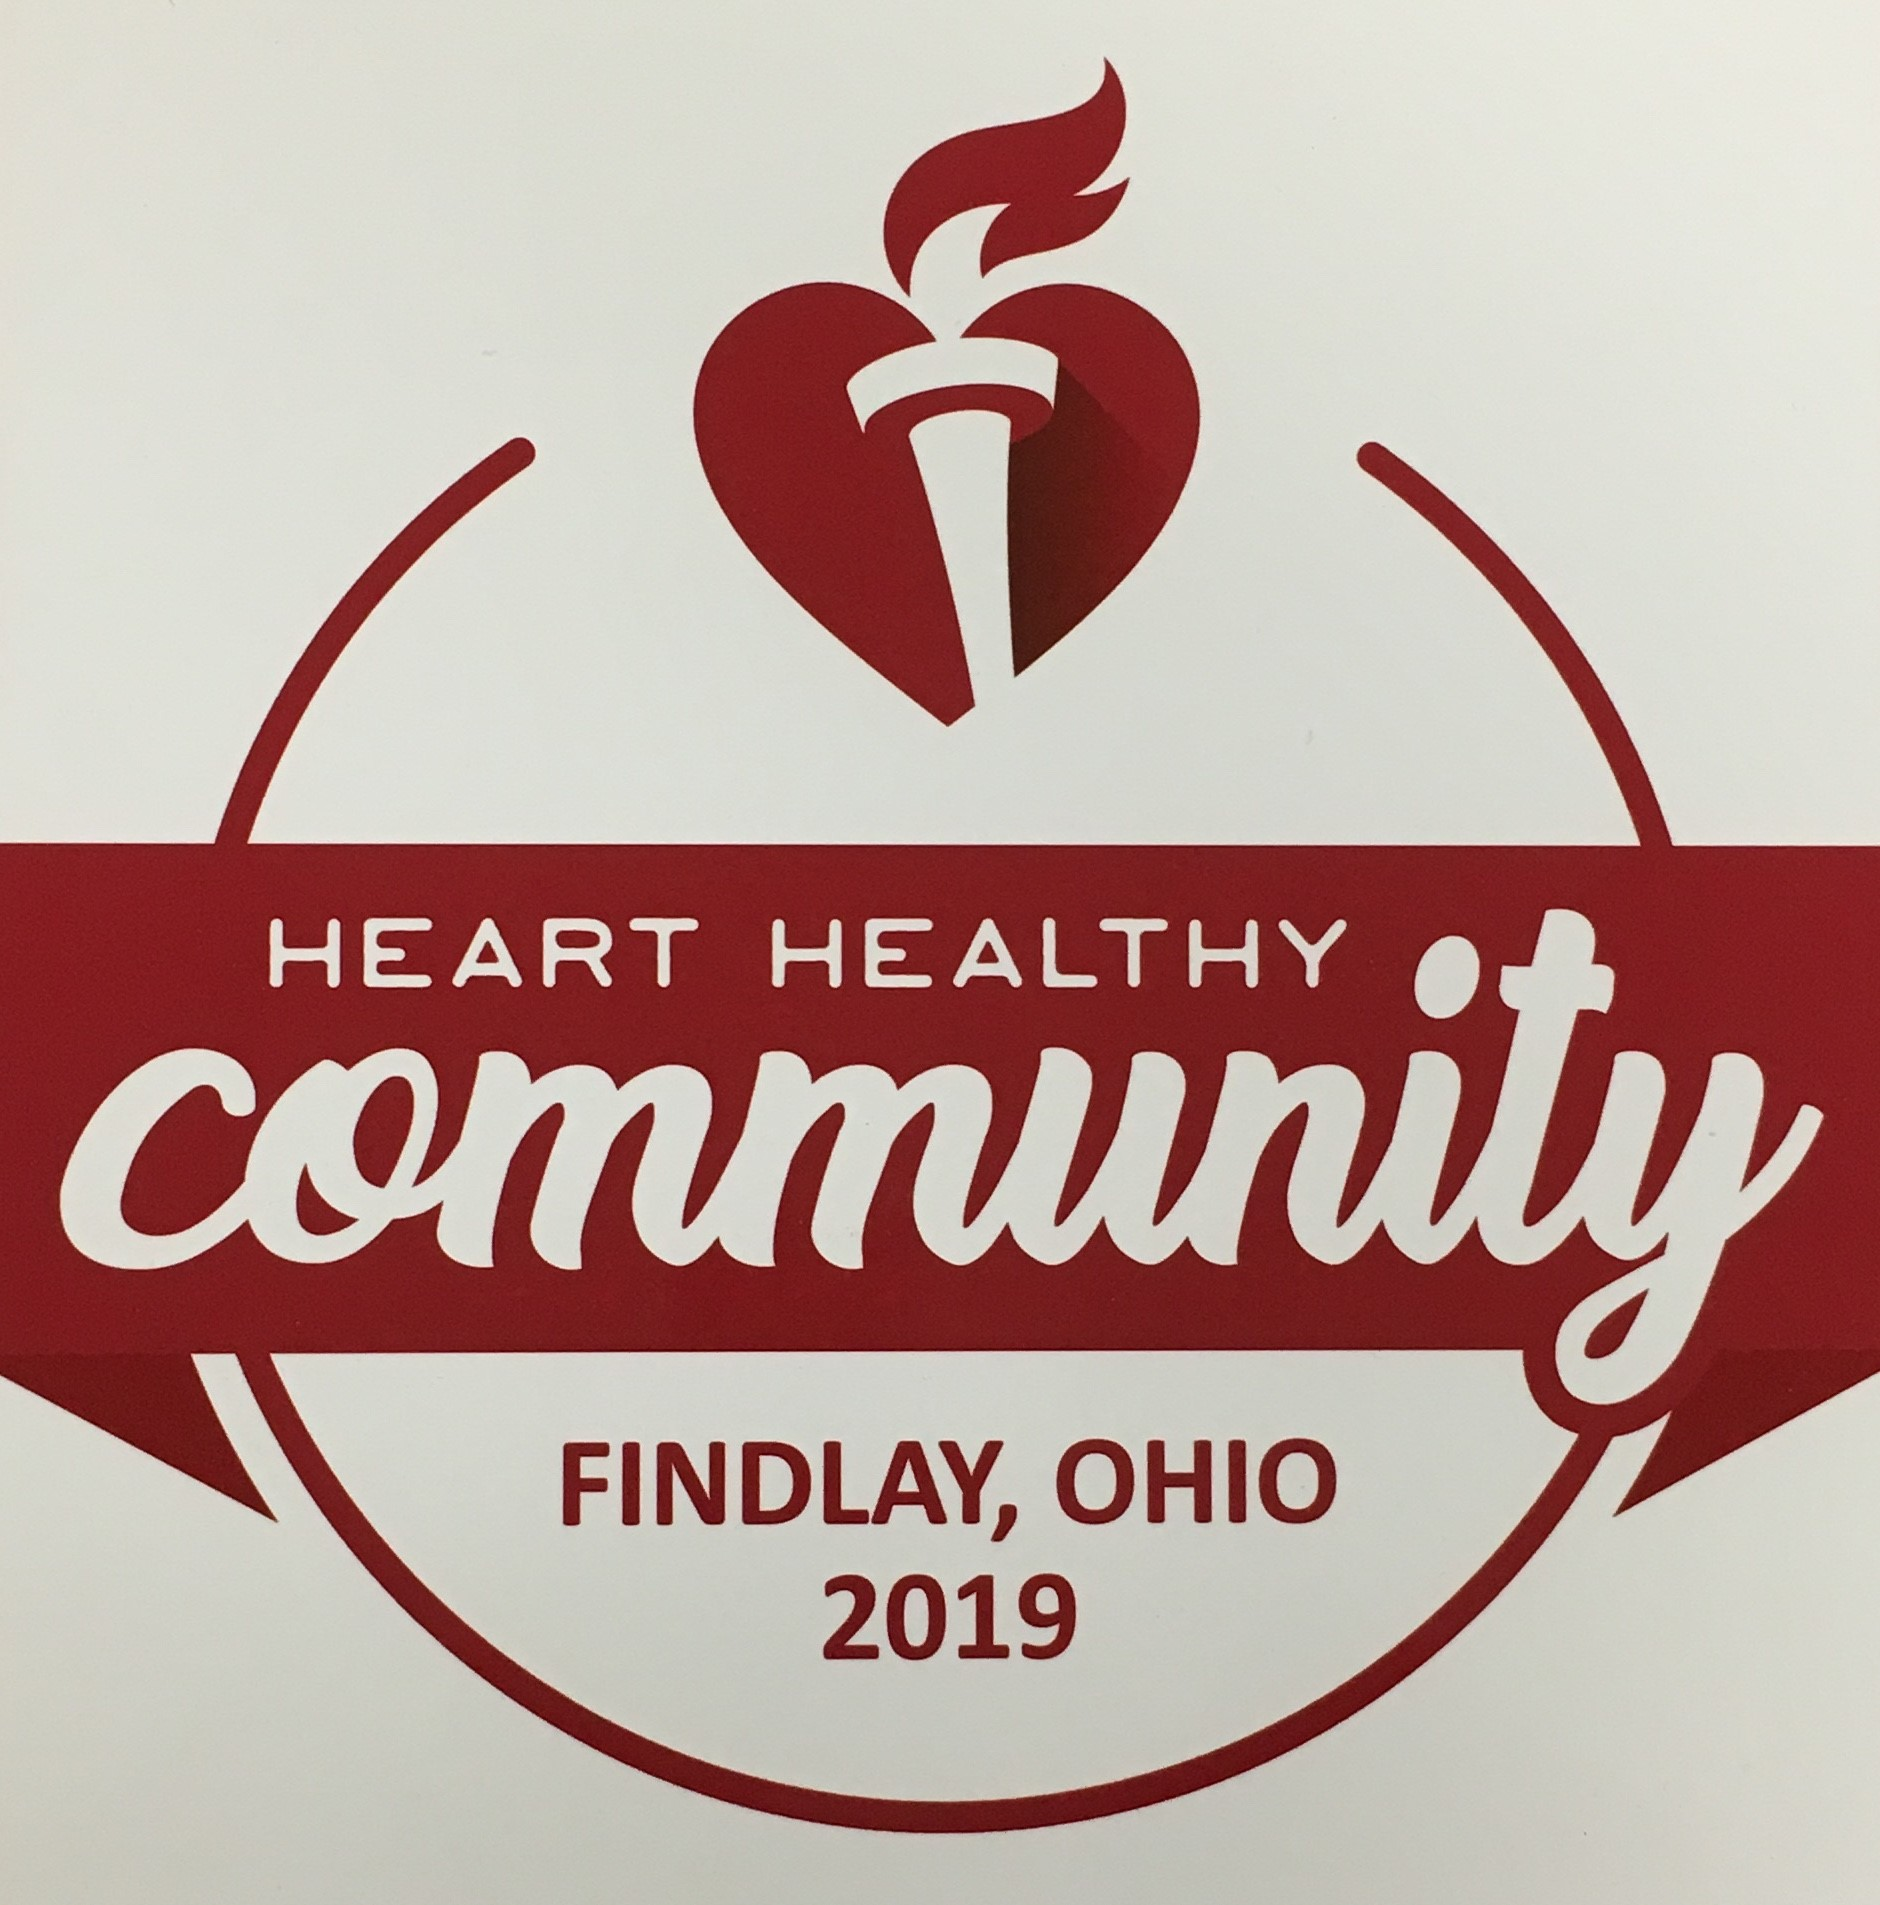 Heart Healthy Community